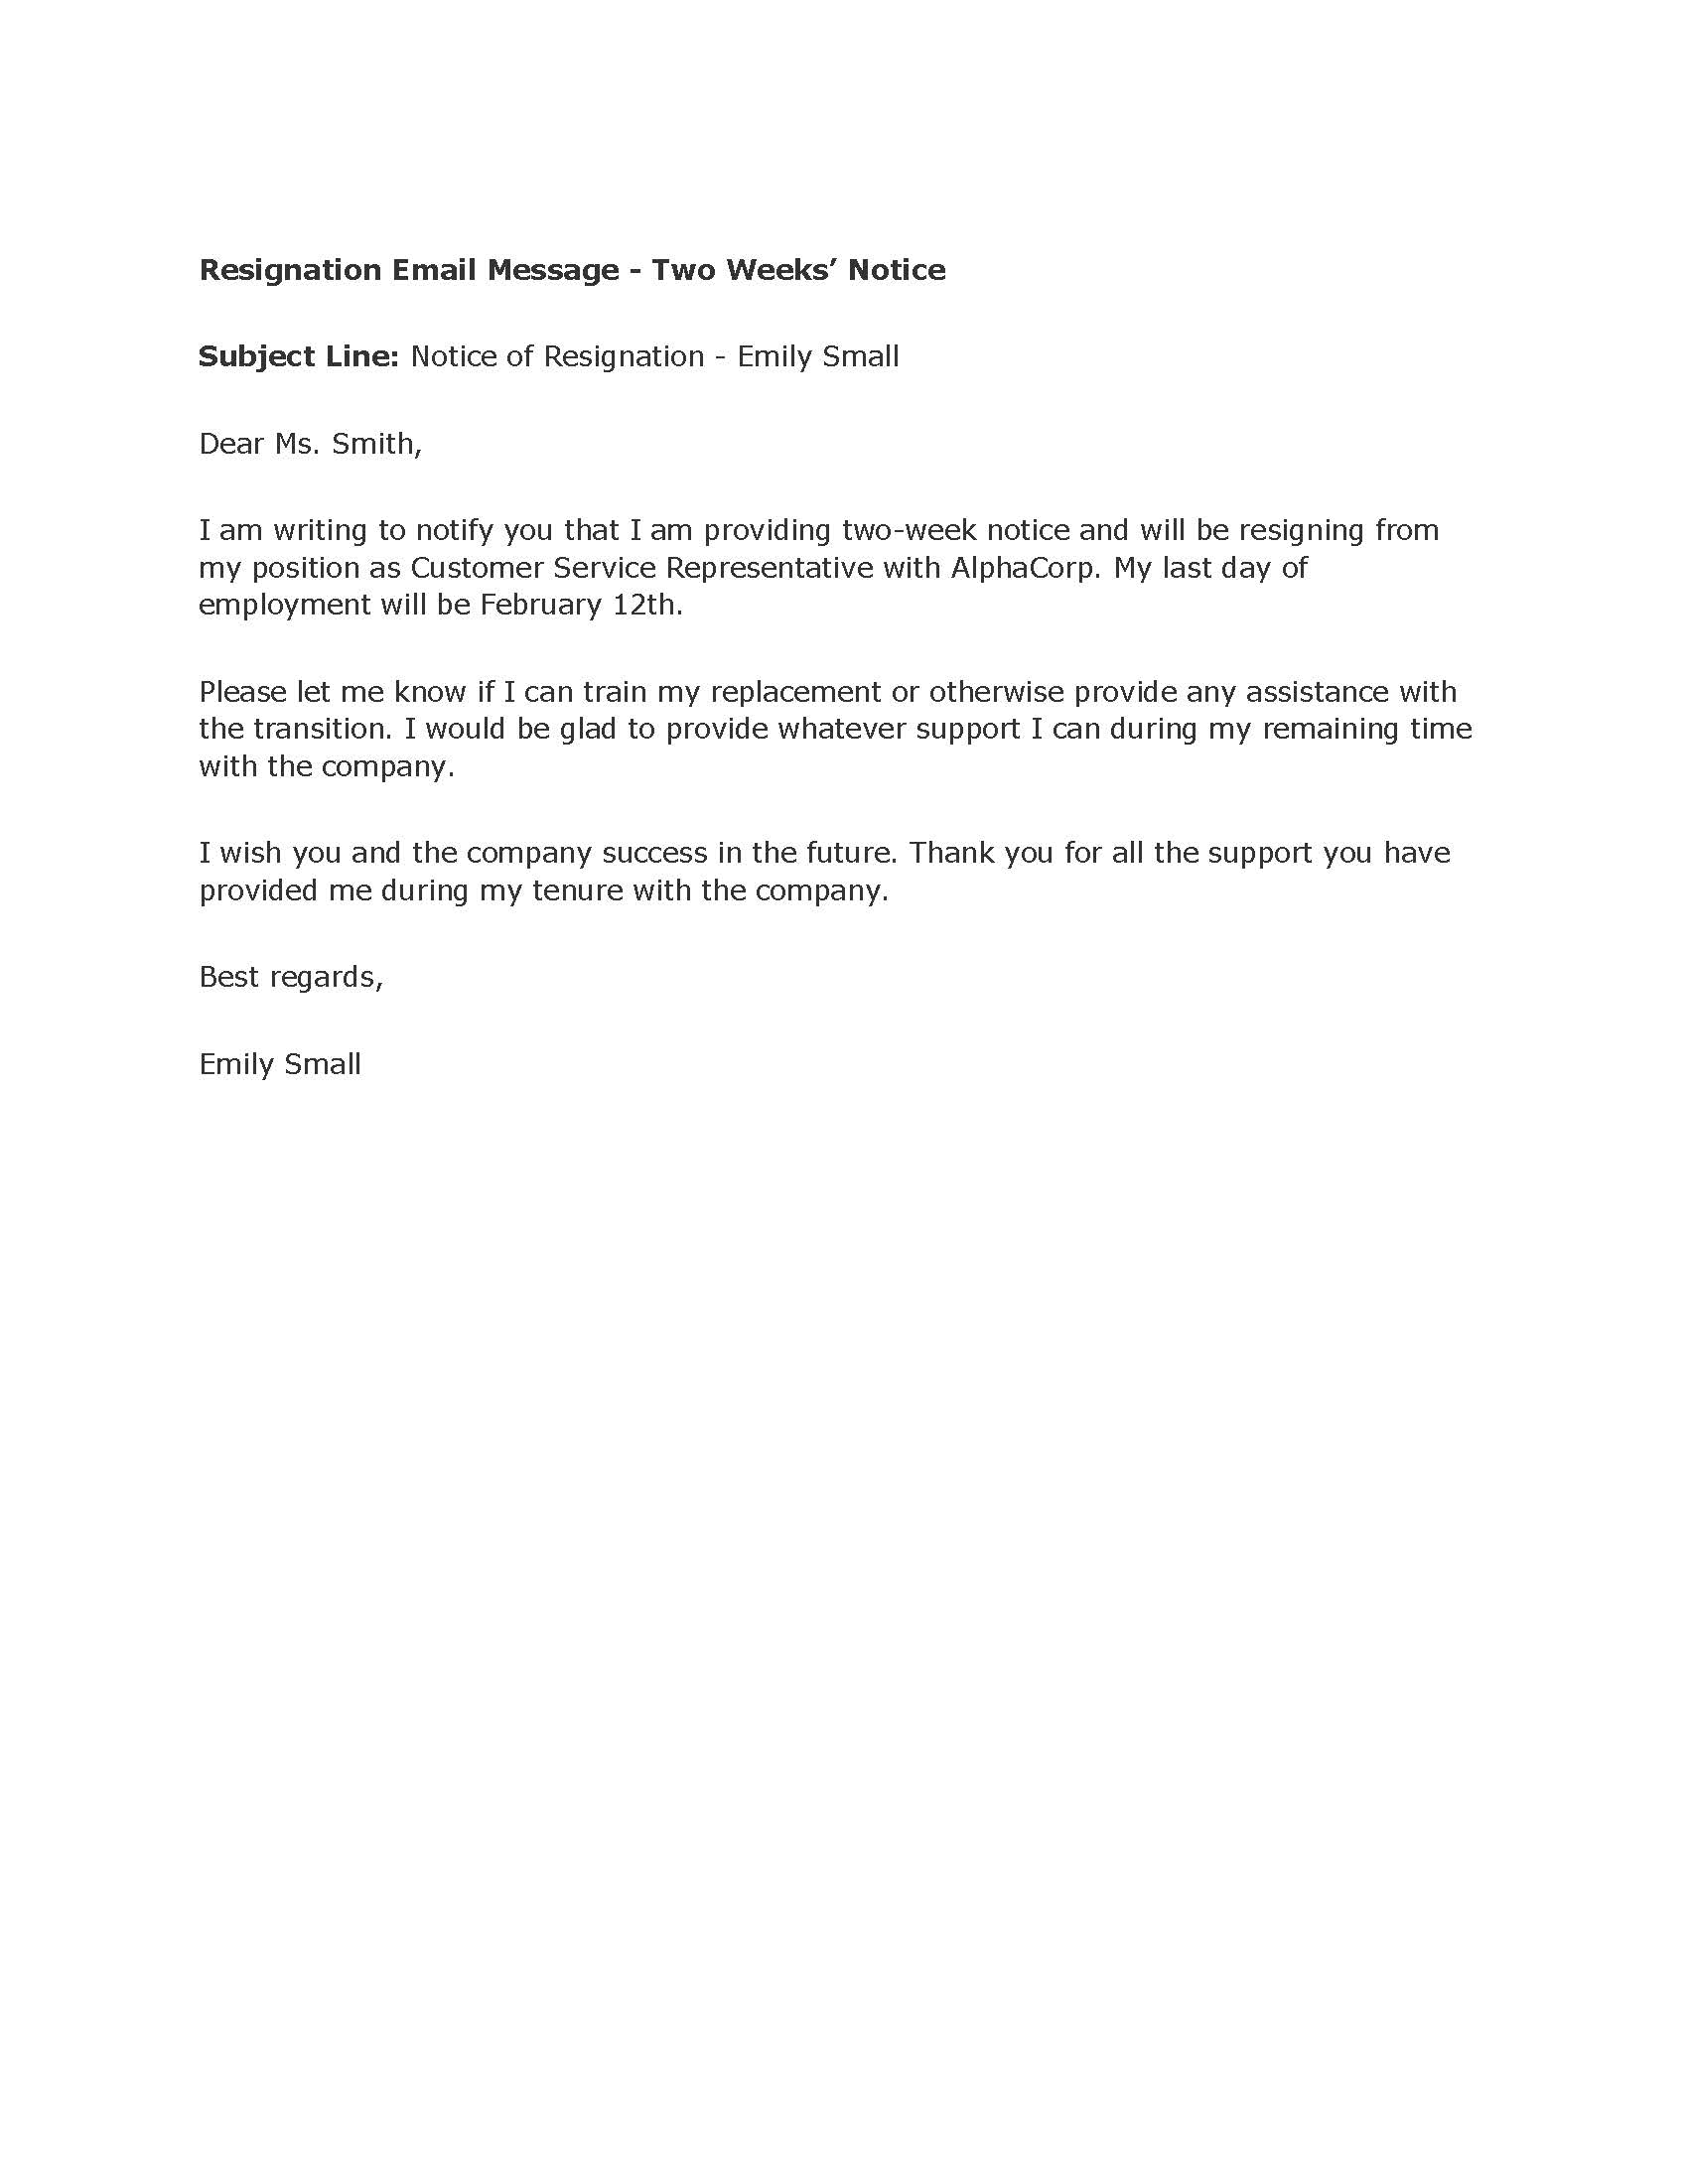 professional two weeks notice letter templates sample resignation letter two weeks notice